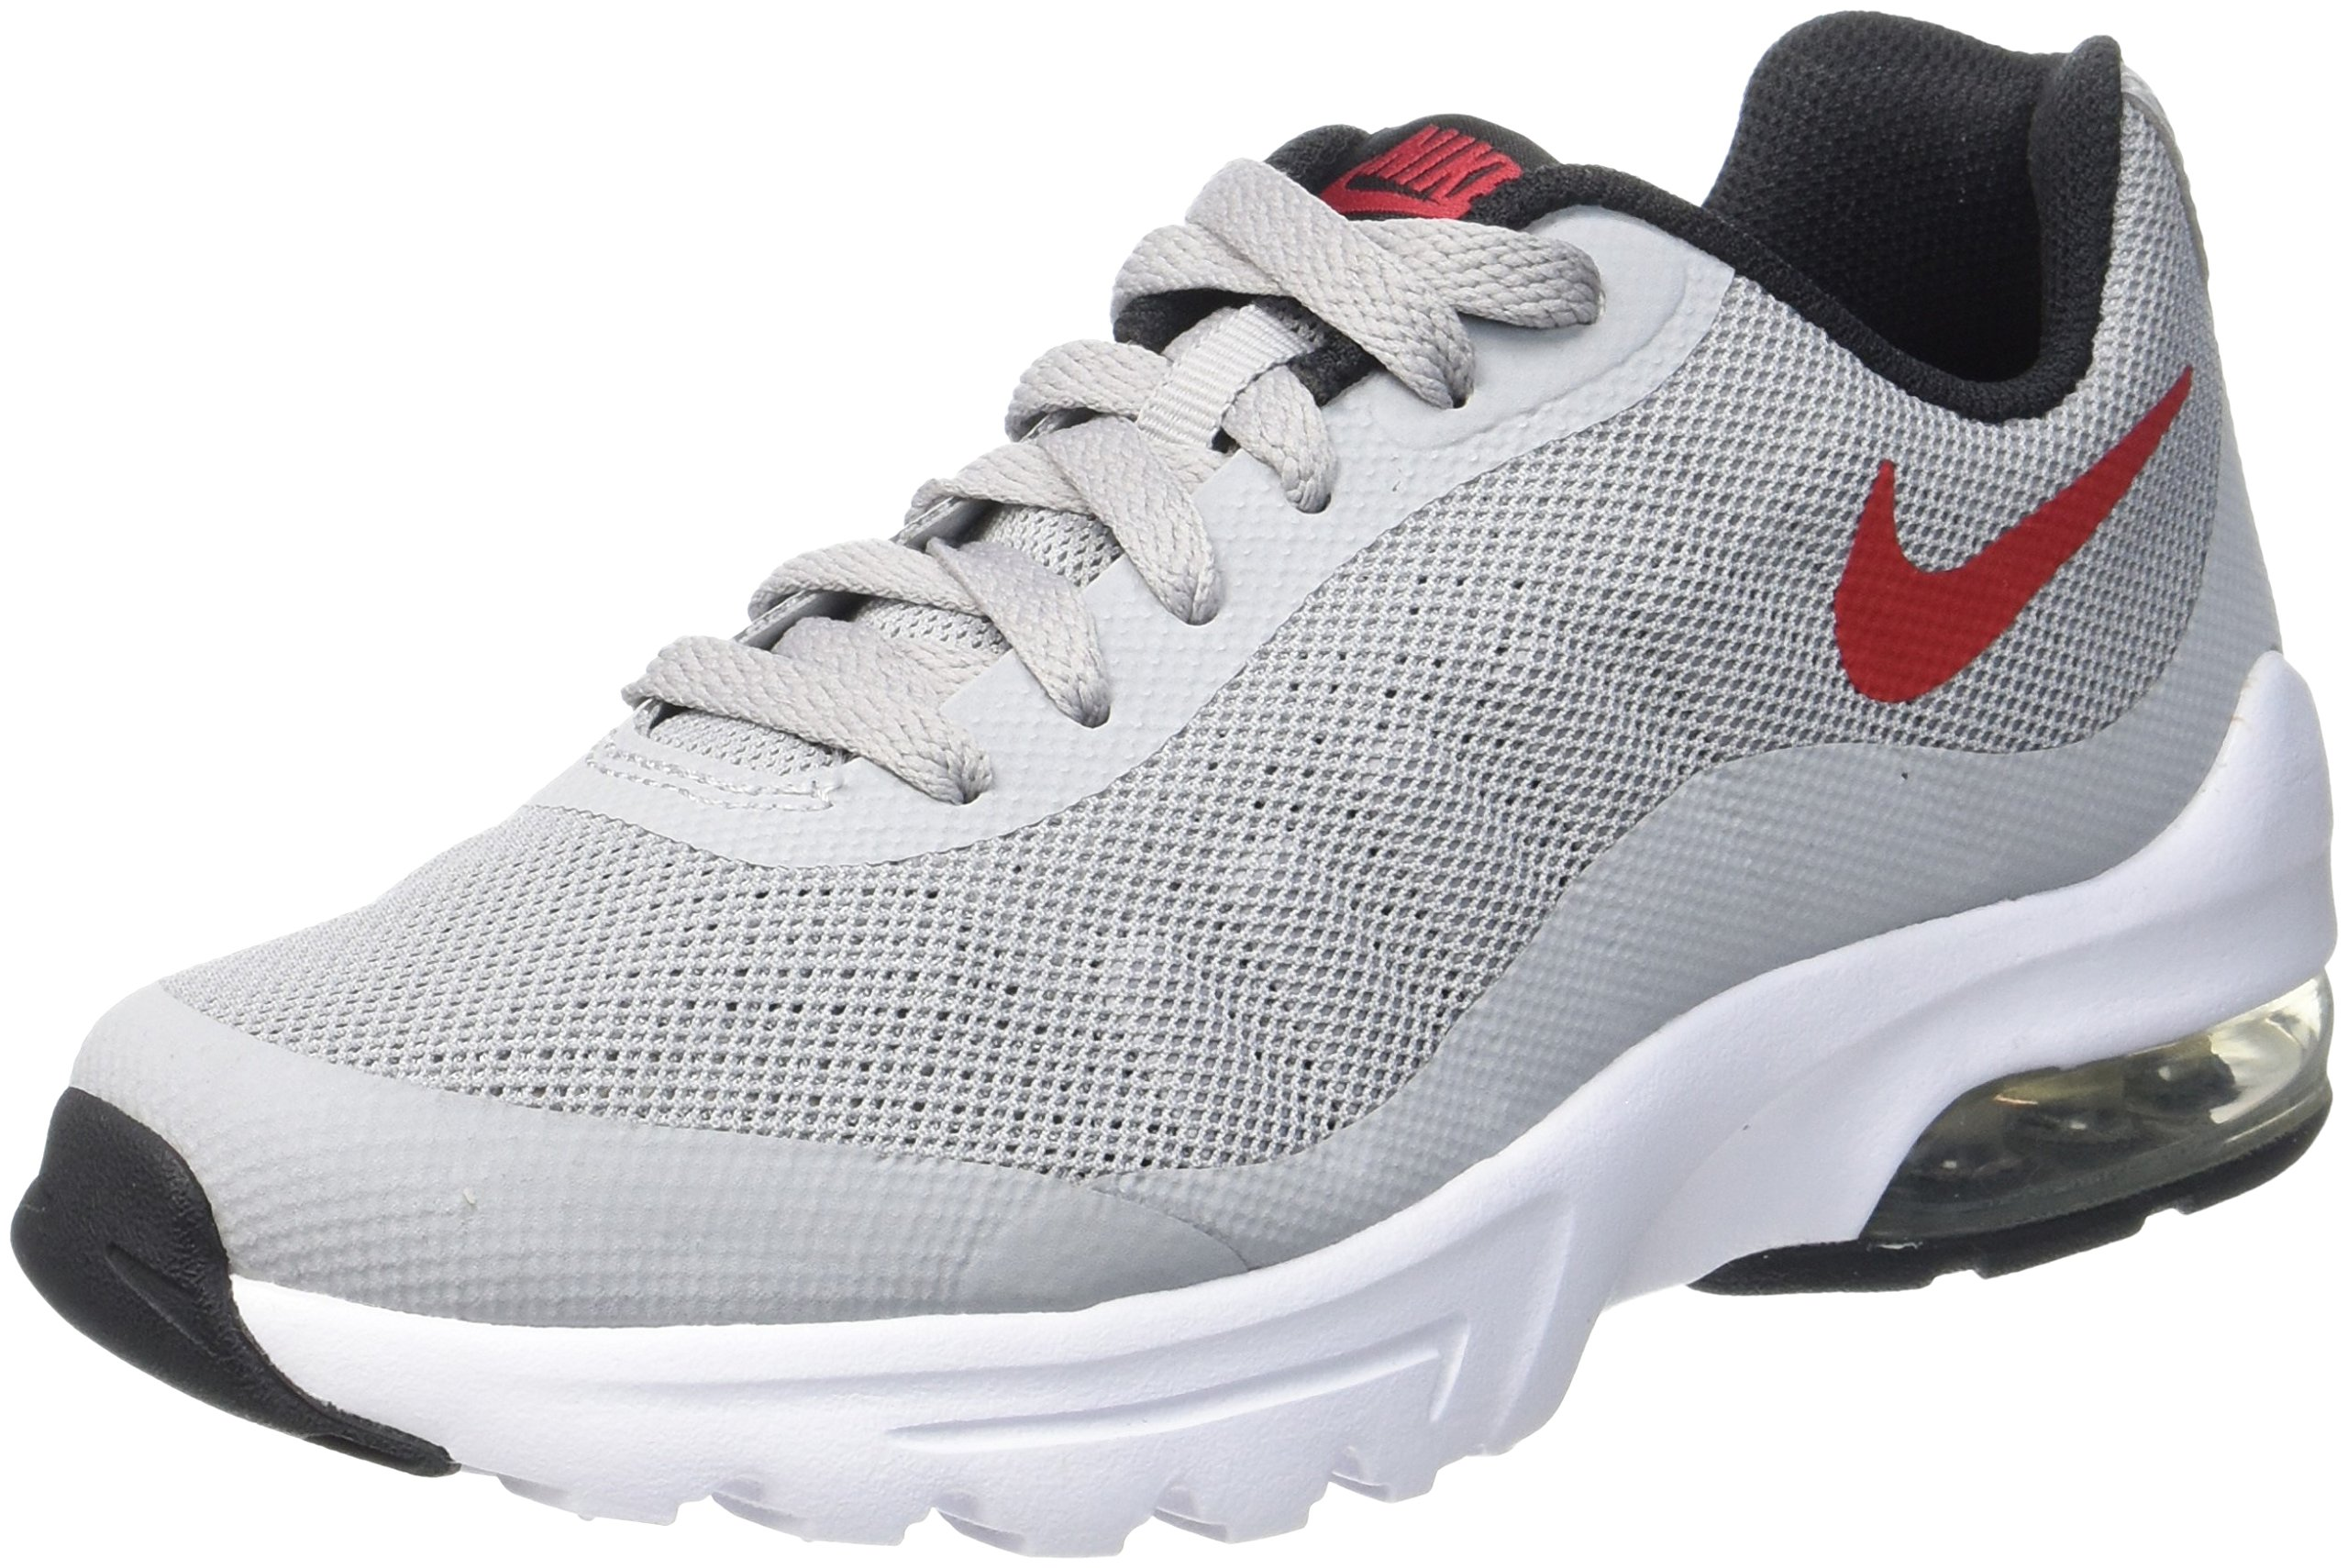 Fille De Selon Chaussures Les Sport Top Notes tZURw